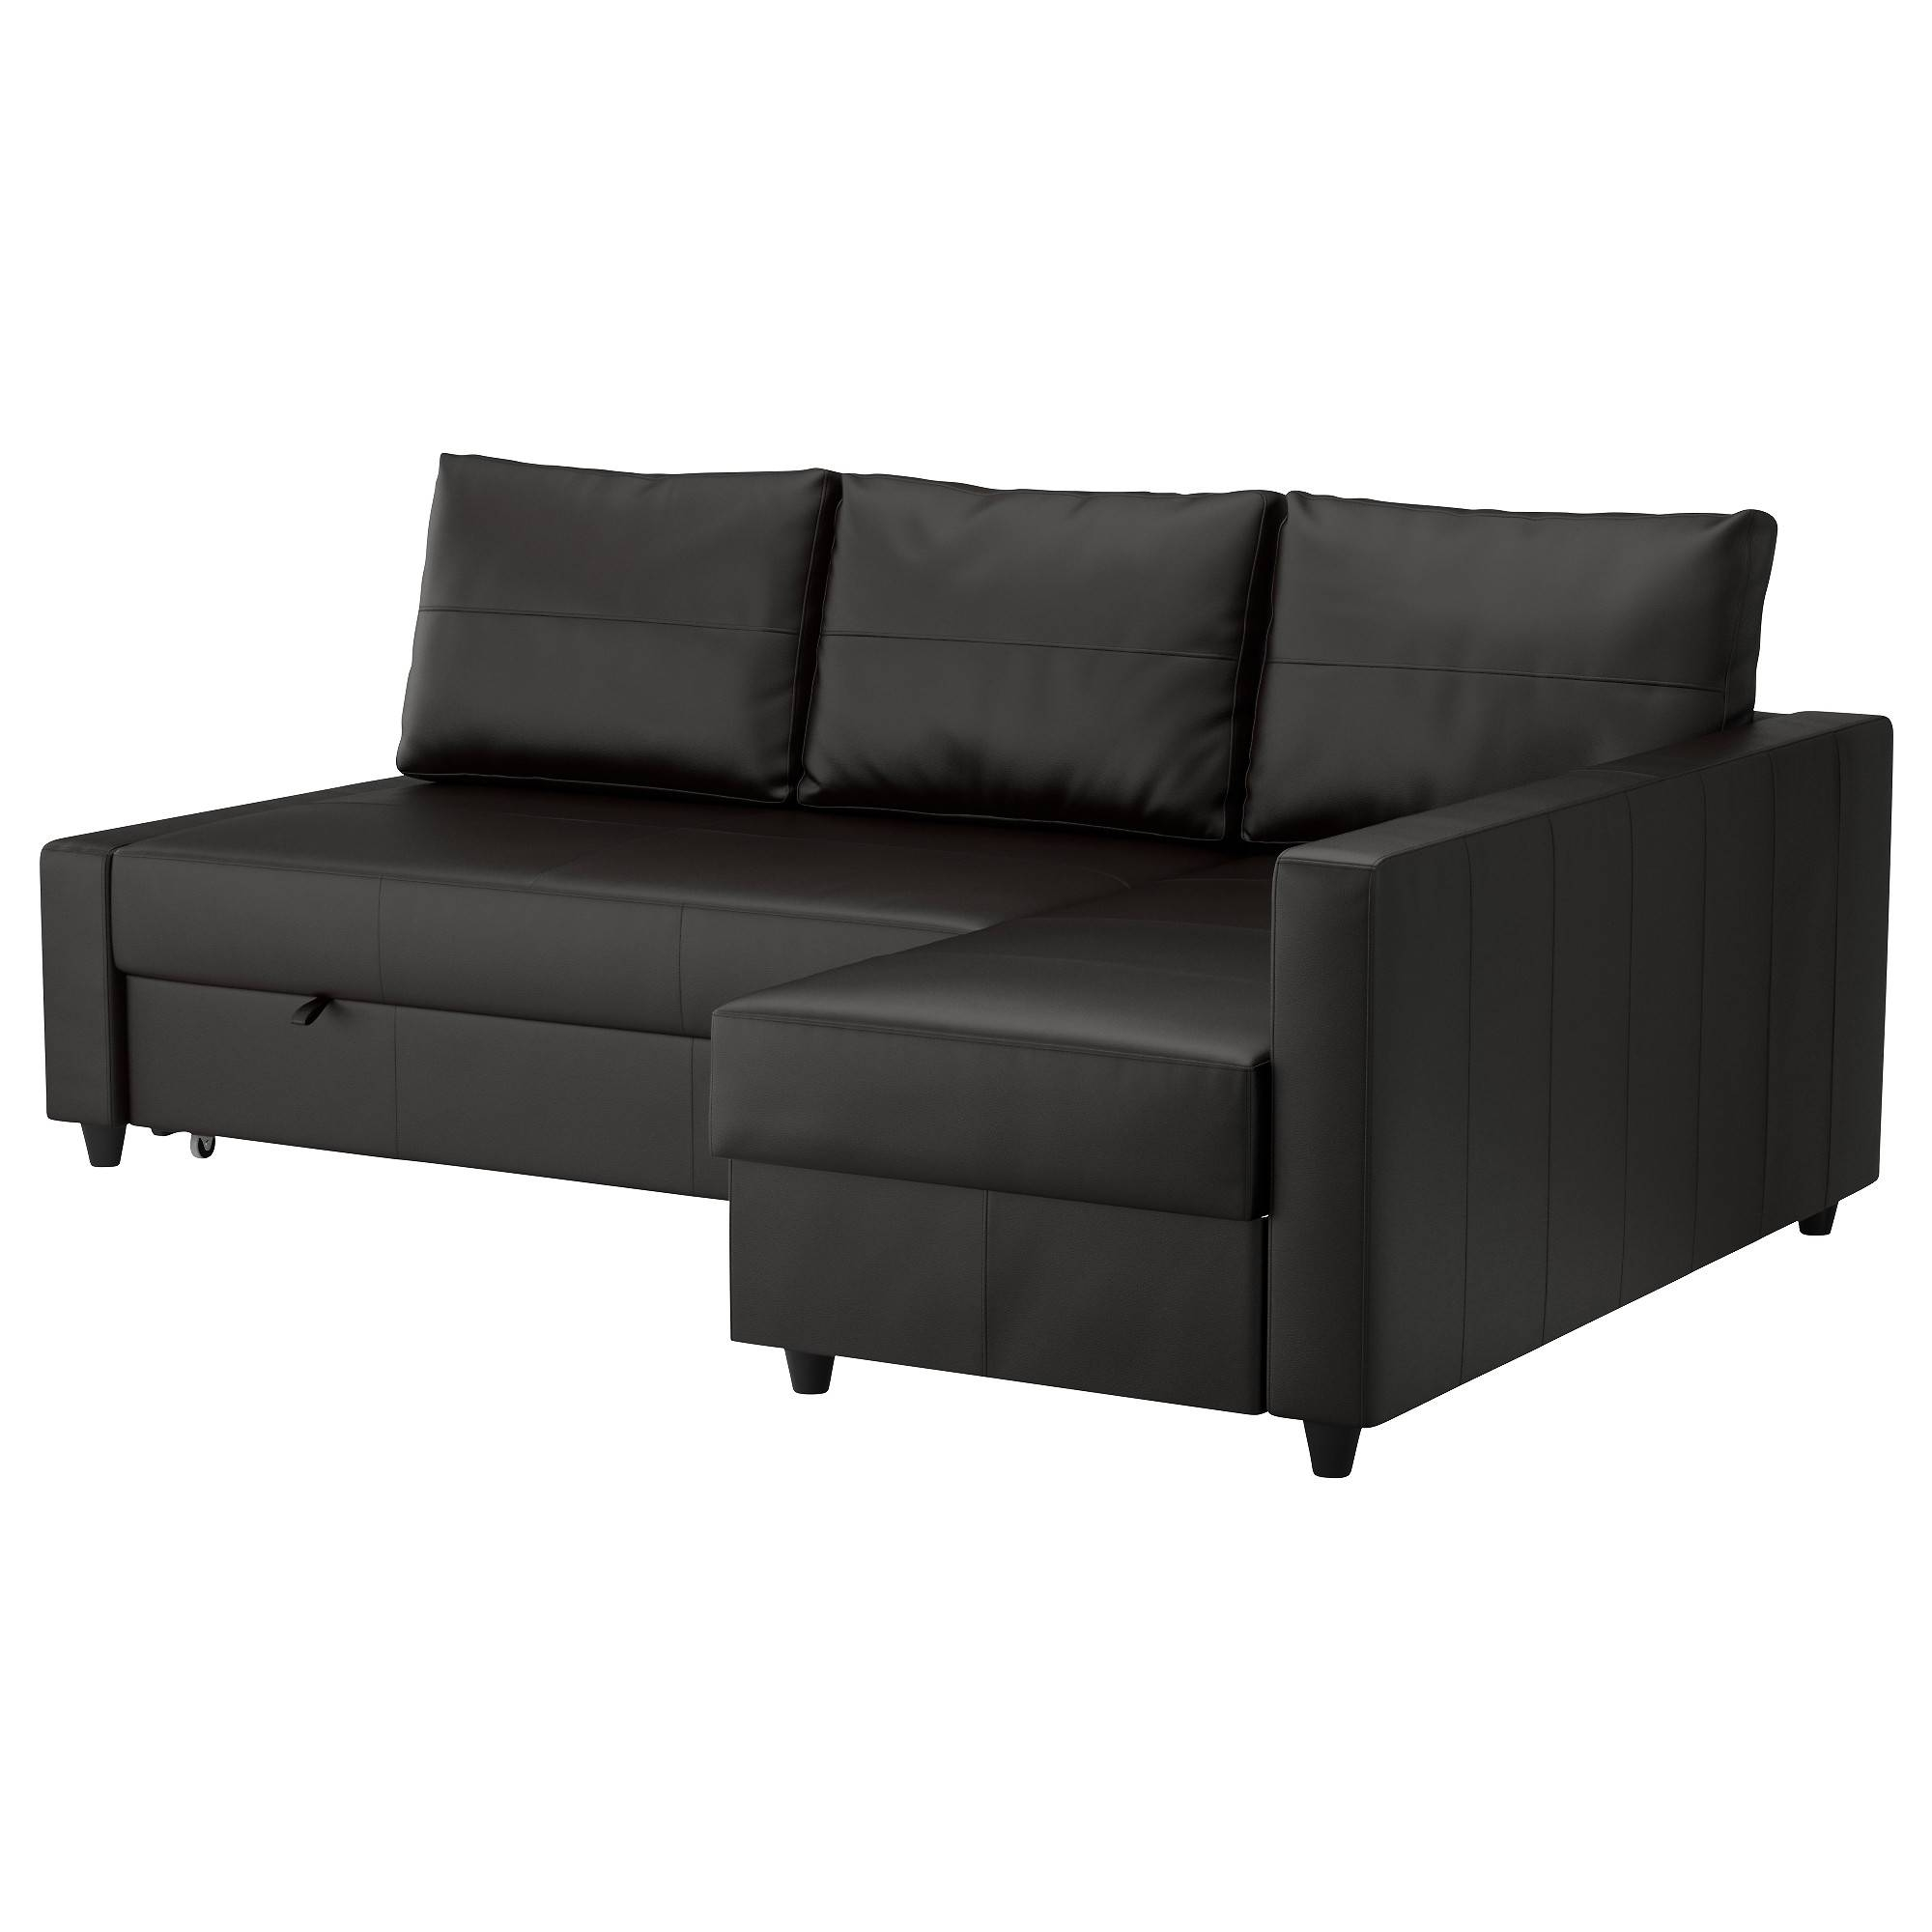 Friheten Corner Sofa-Bed With Storage Bomstad Black - Ikea regarding Ikea Corner Sofa Bed With Storage (Image 4 of 25)